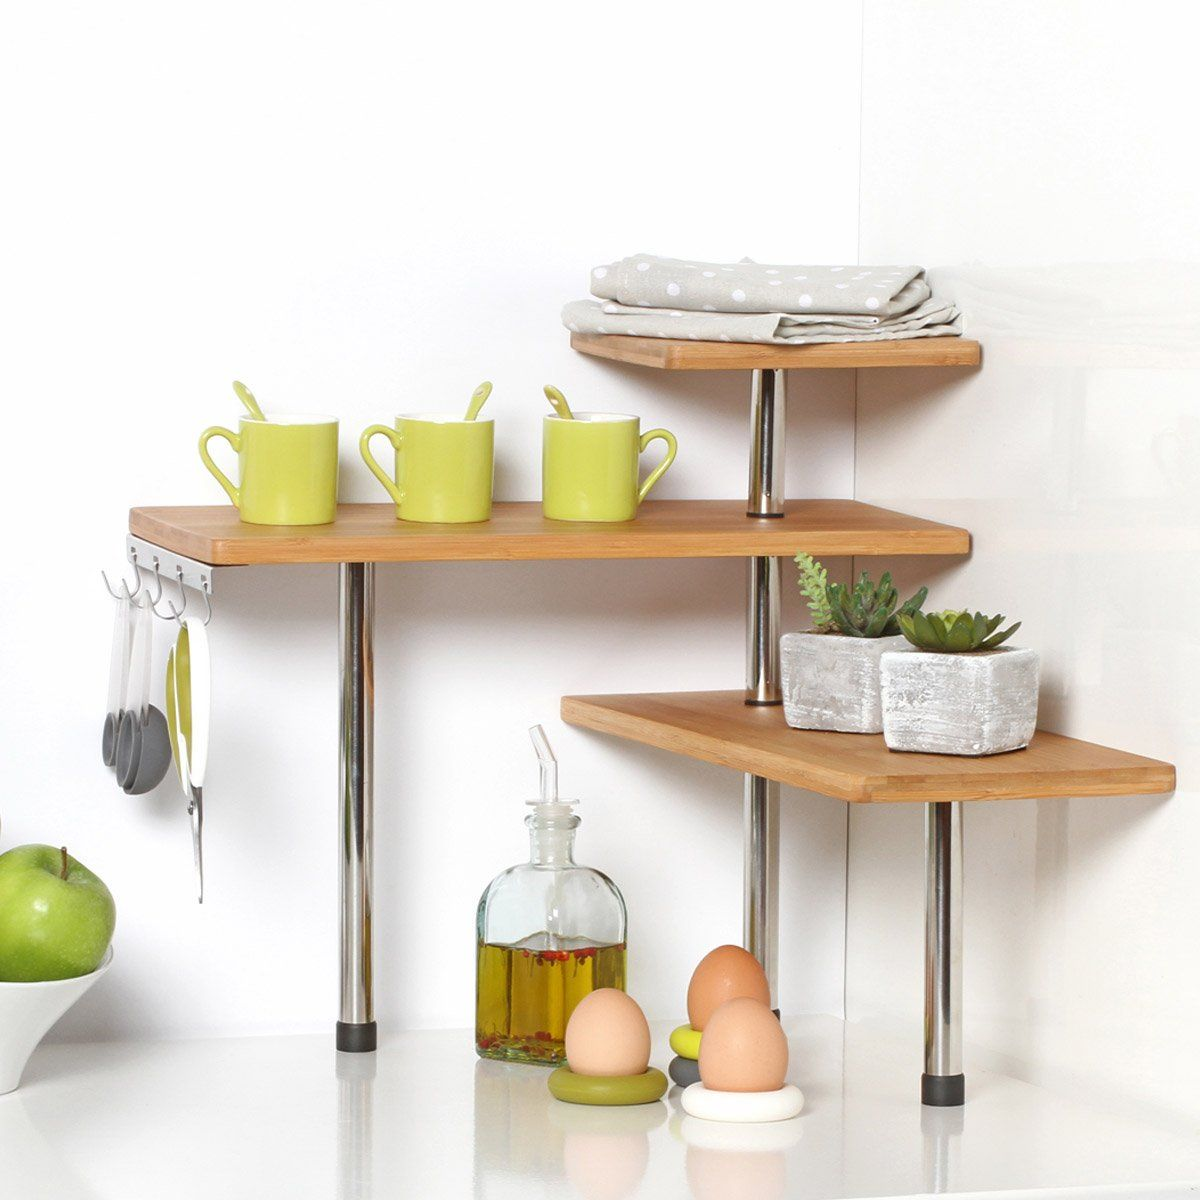 Bamboo and Stainless Steel Corner Shelf Unit - Kitchen - Bathroom ...